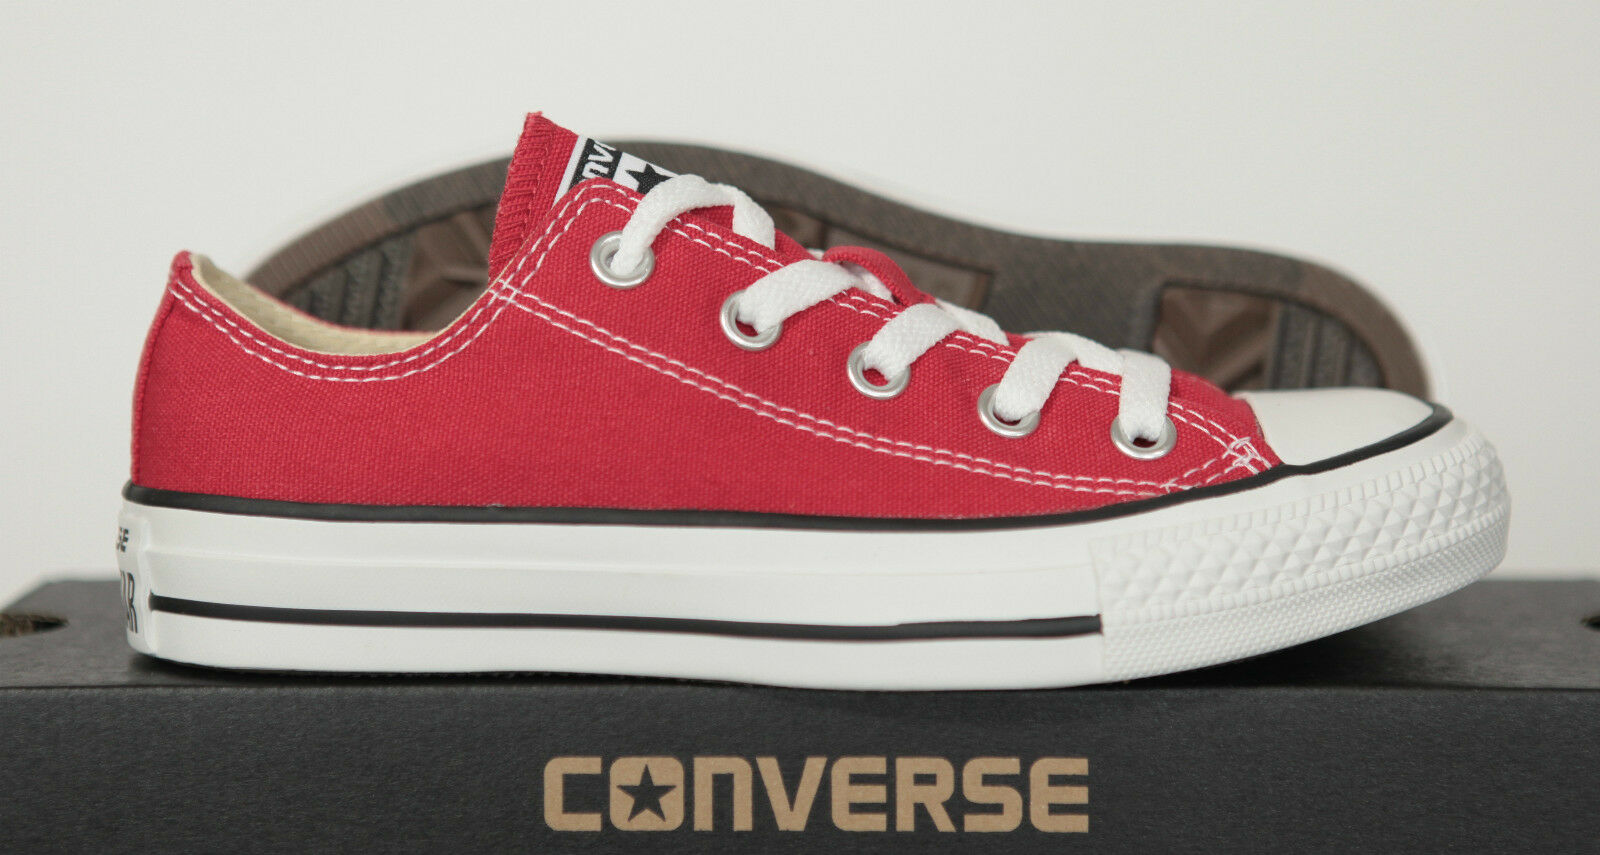 Neu All Star Converse Chucks Low Sneaker Ox Can ROT M9696 10-13 Gr.35 UK 3